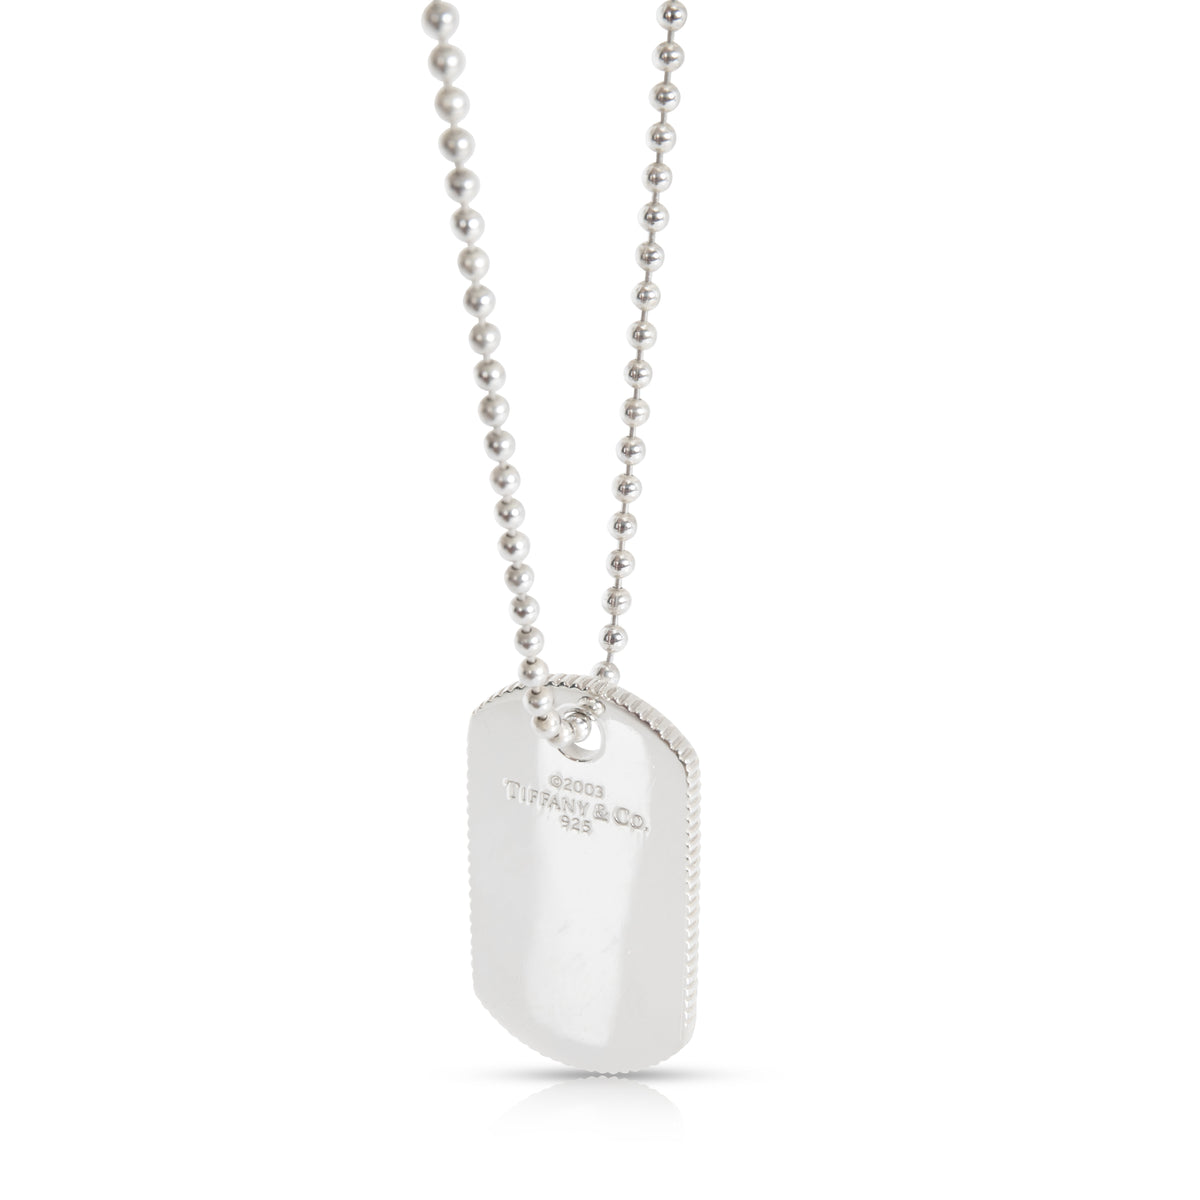 Tiffany & Co. Dog Tag Necklace in  Sterling Silver